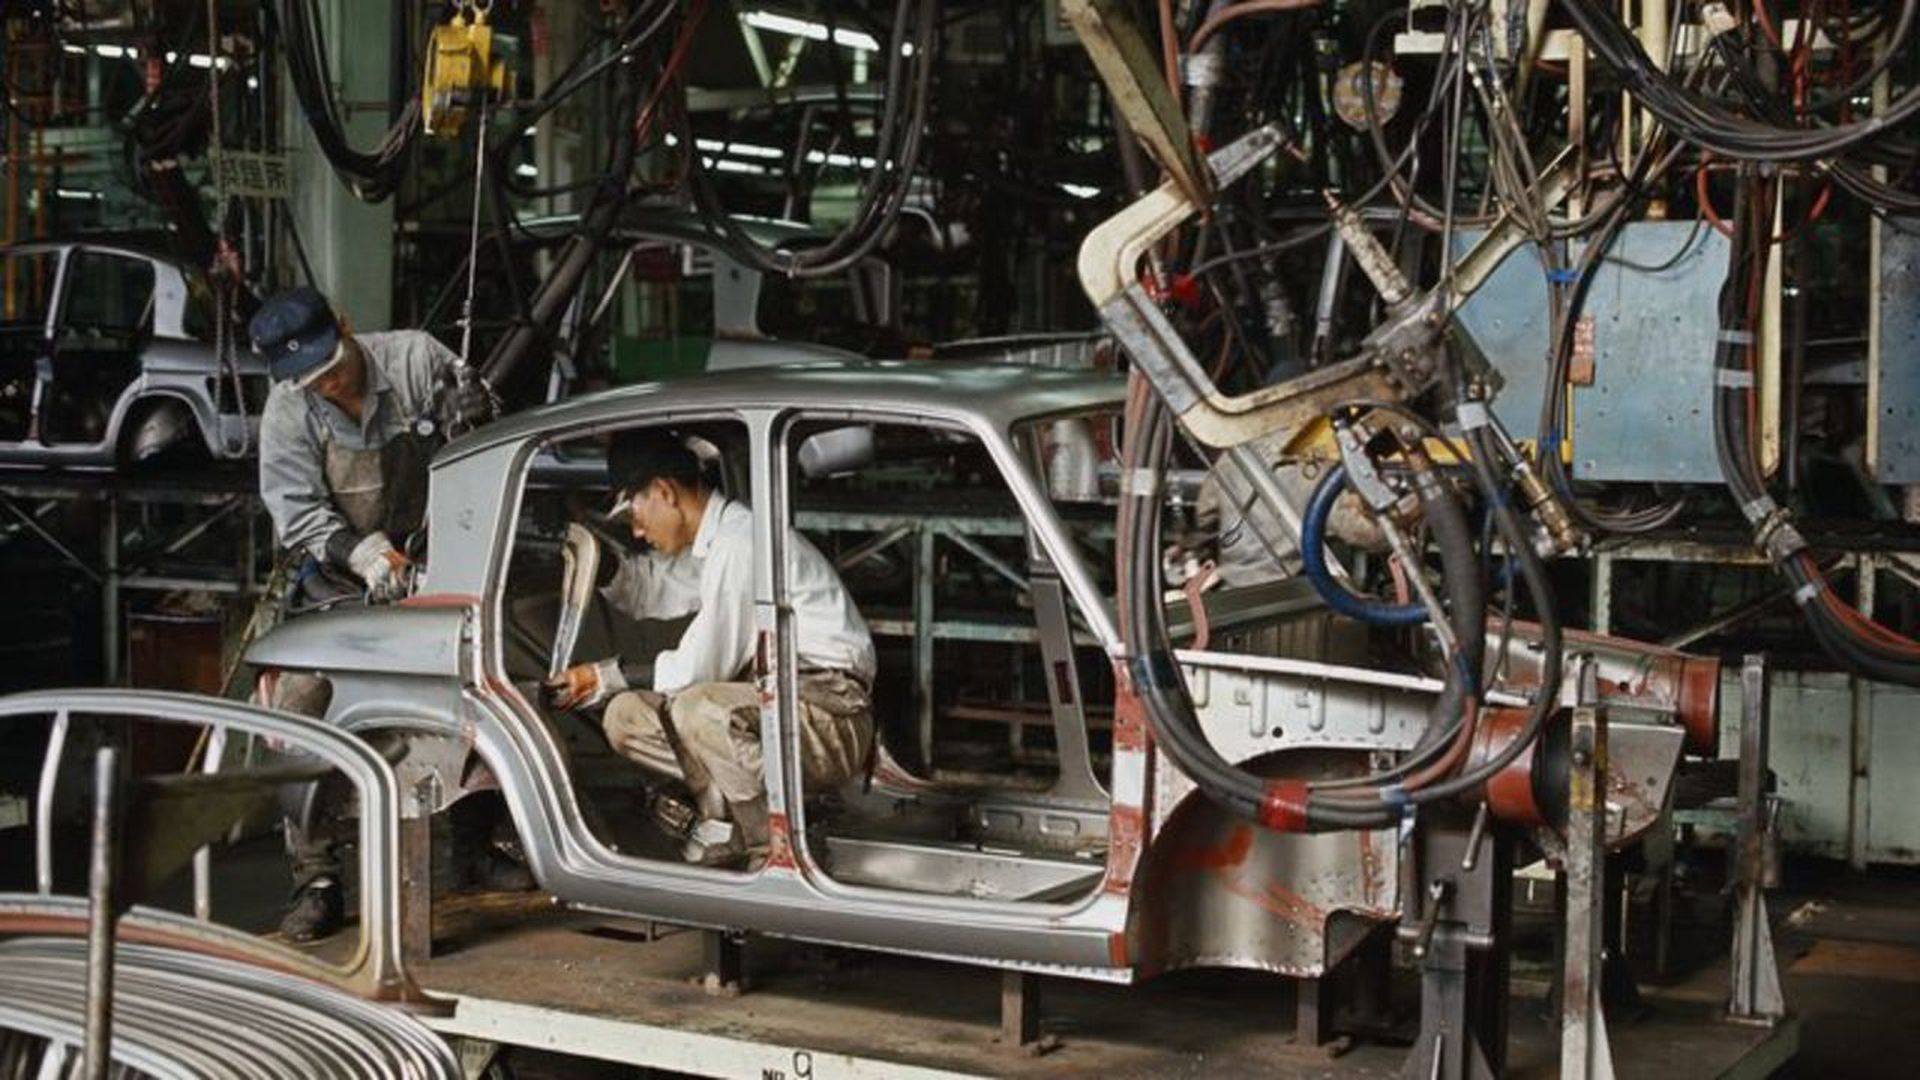 Factory workers assembling a car. Photo: Jerry Cooke/Corbis via Getty Images